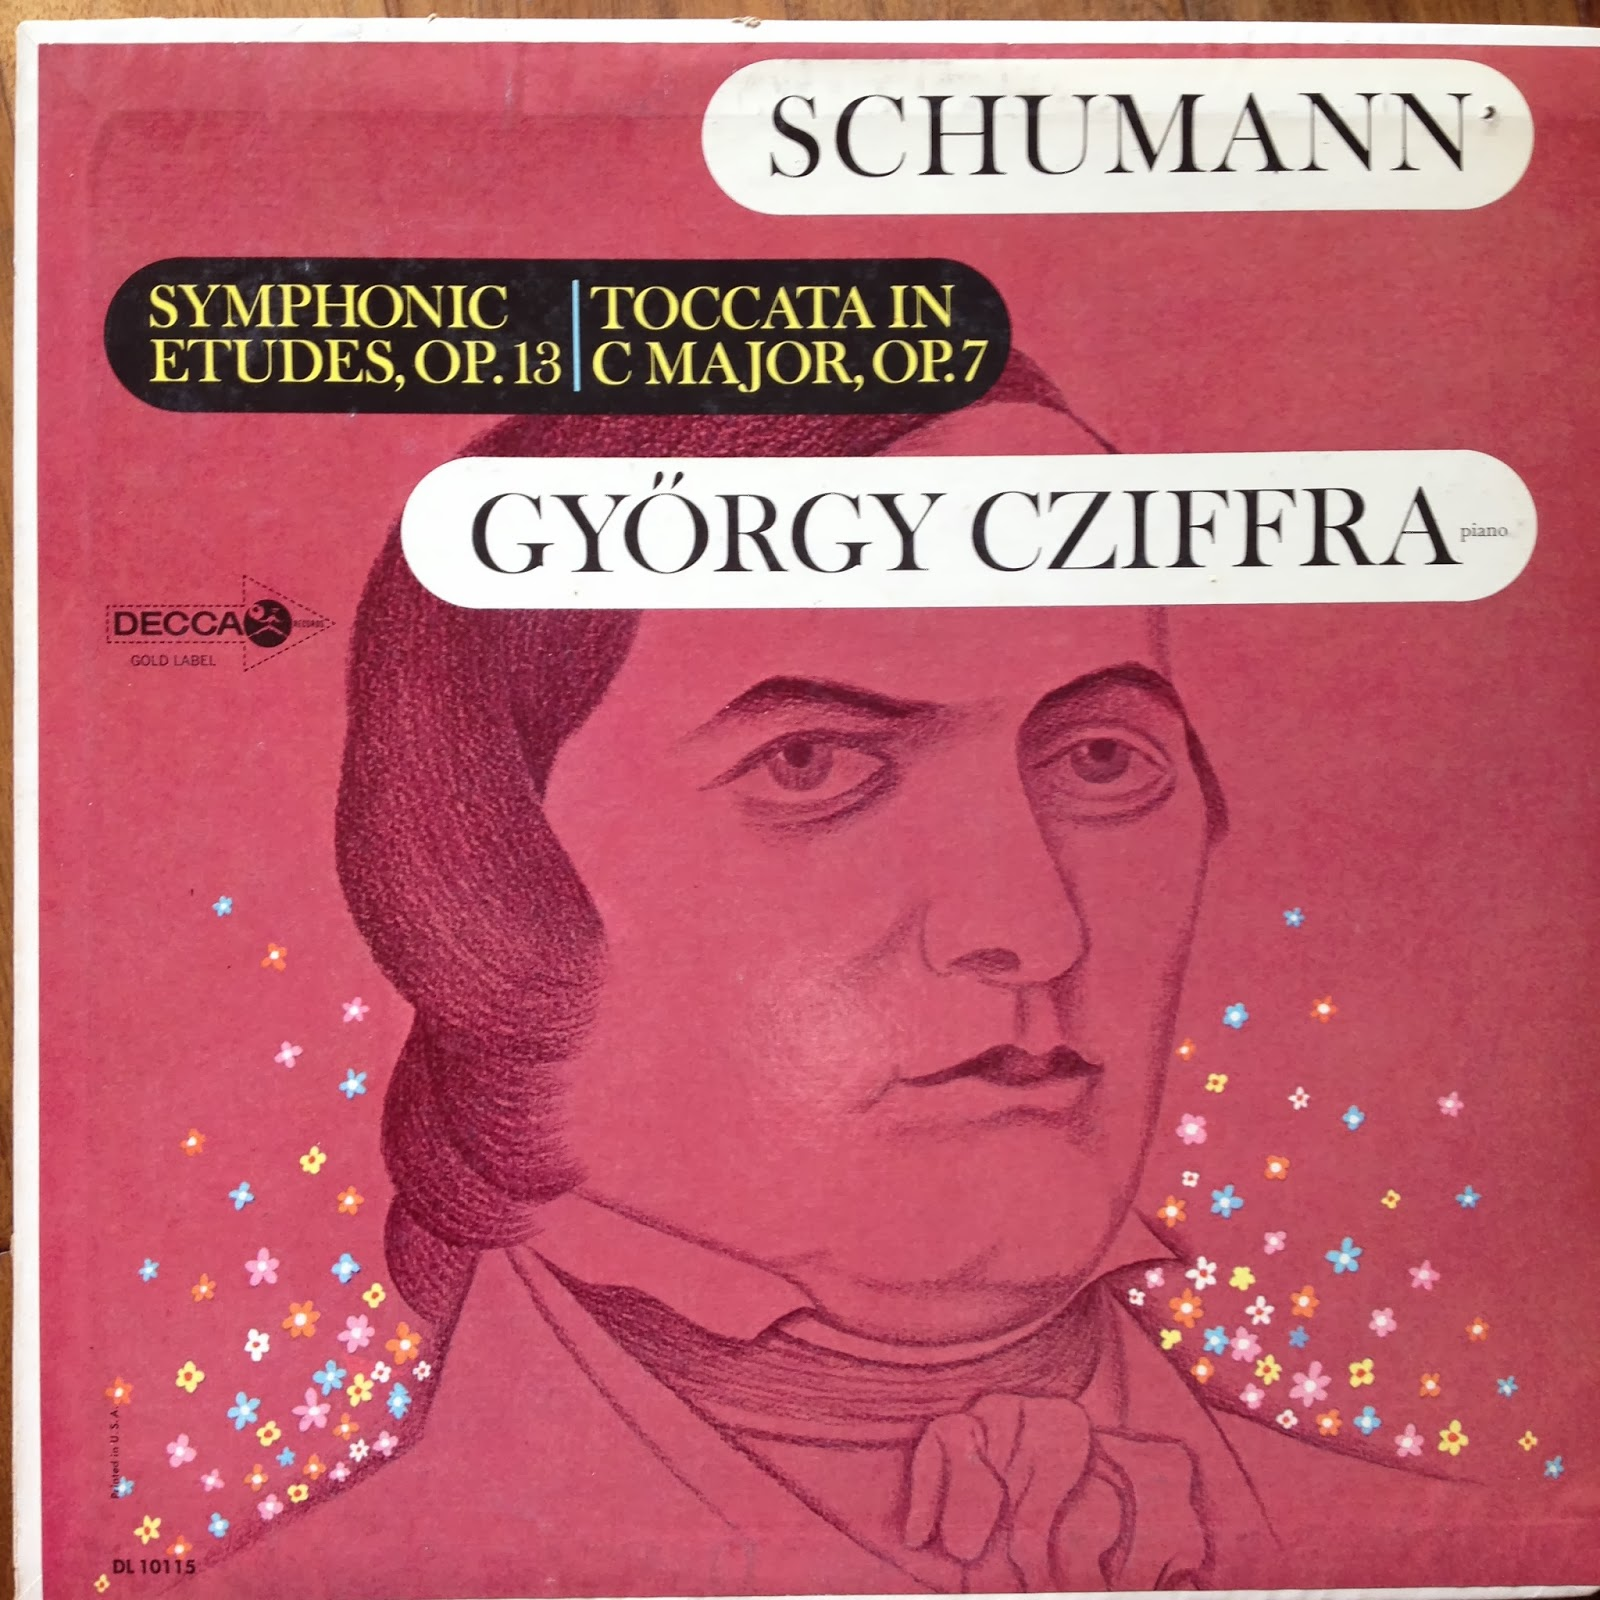 LP of Schumann, Etudes and Toccata